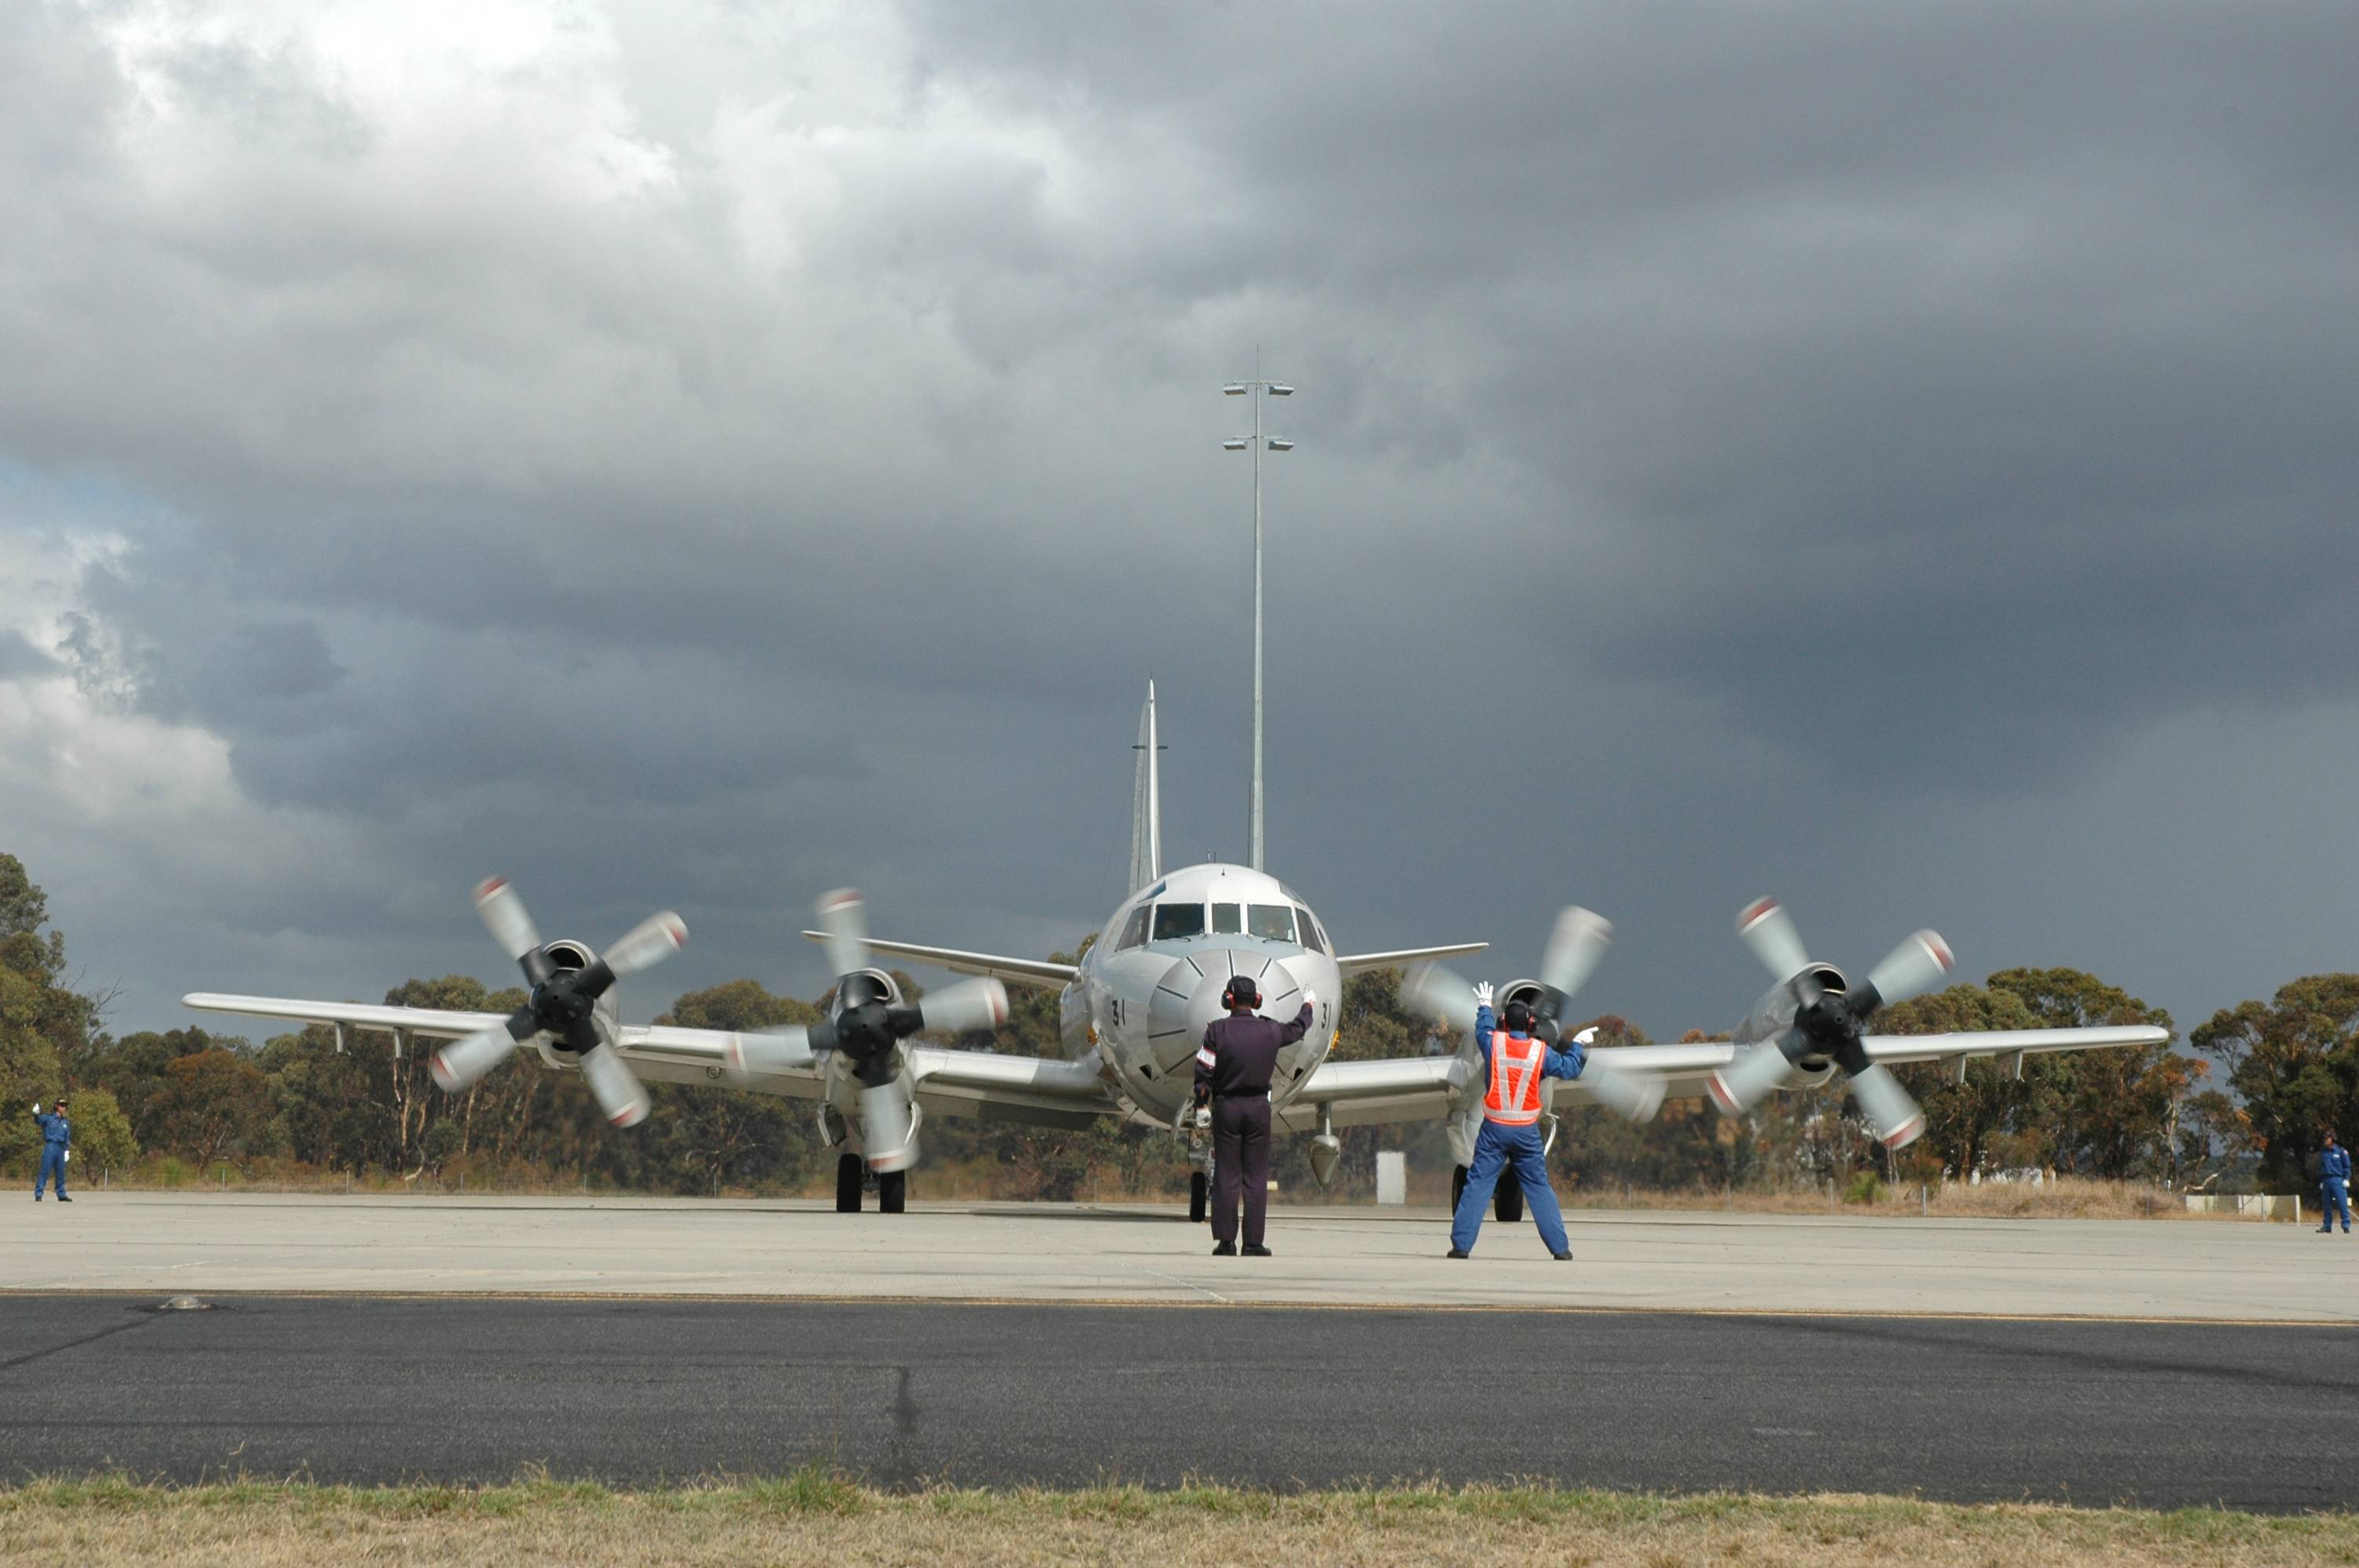 A Japanese P-3C Orion is guided by ground crew as it taxis along the tarmac at RAAF Base Pearce before departing for Japan's final search flight for the missing Malaysia Airlines flight MH370, Monday.